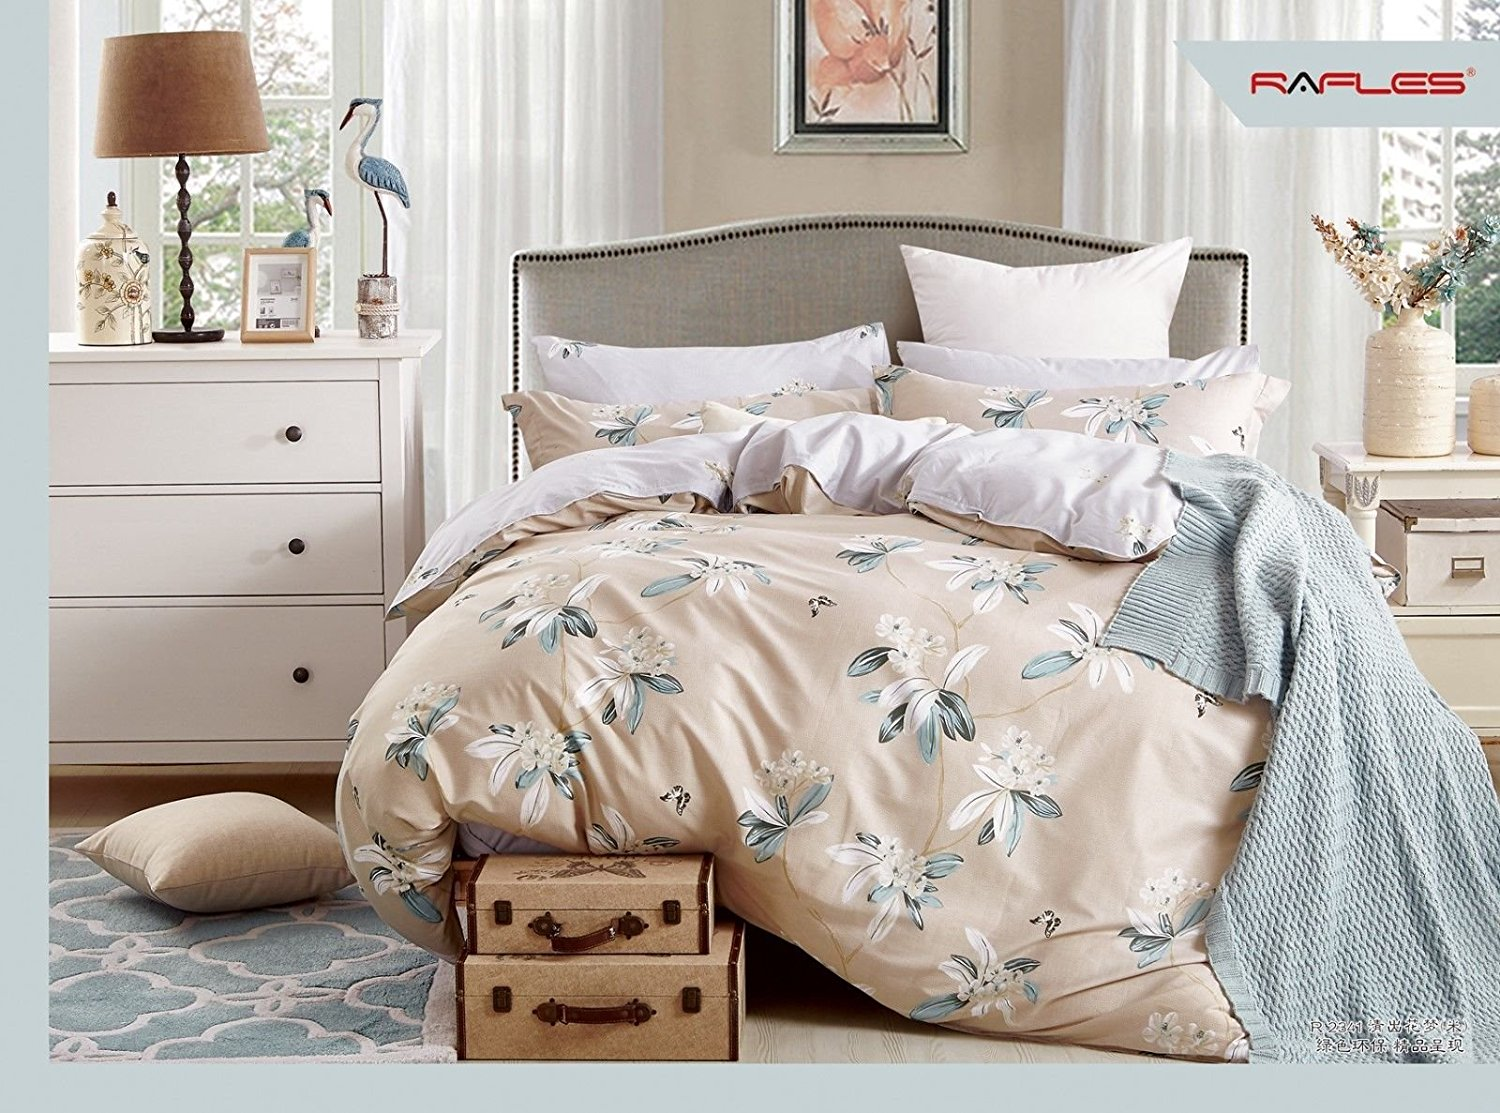 King Bed Duvet Set (Design 6)